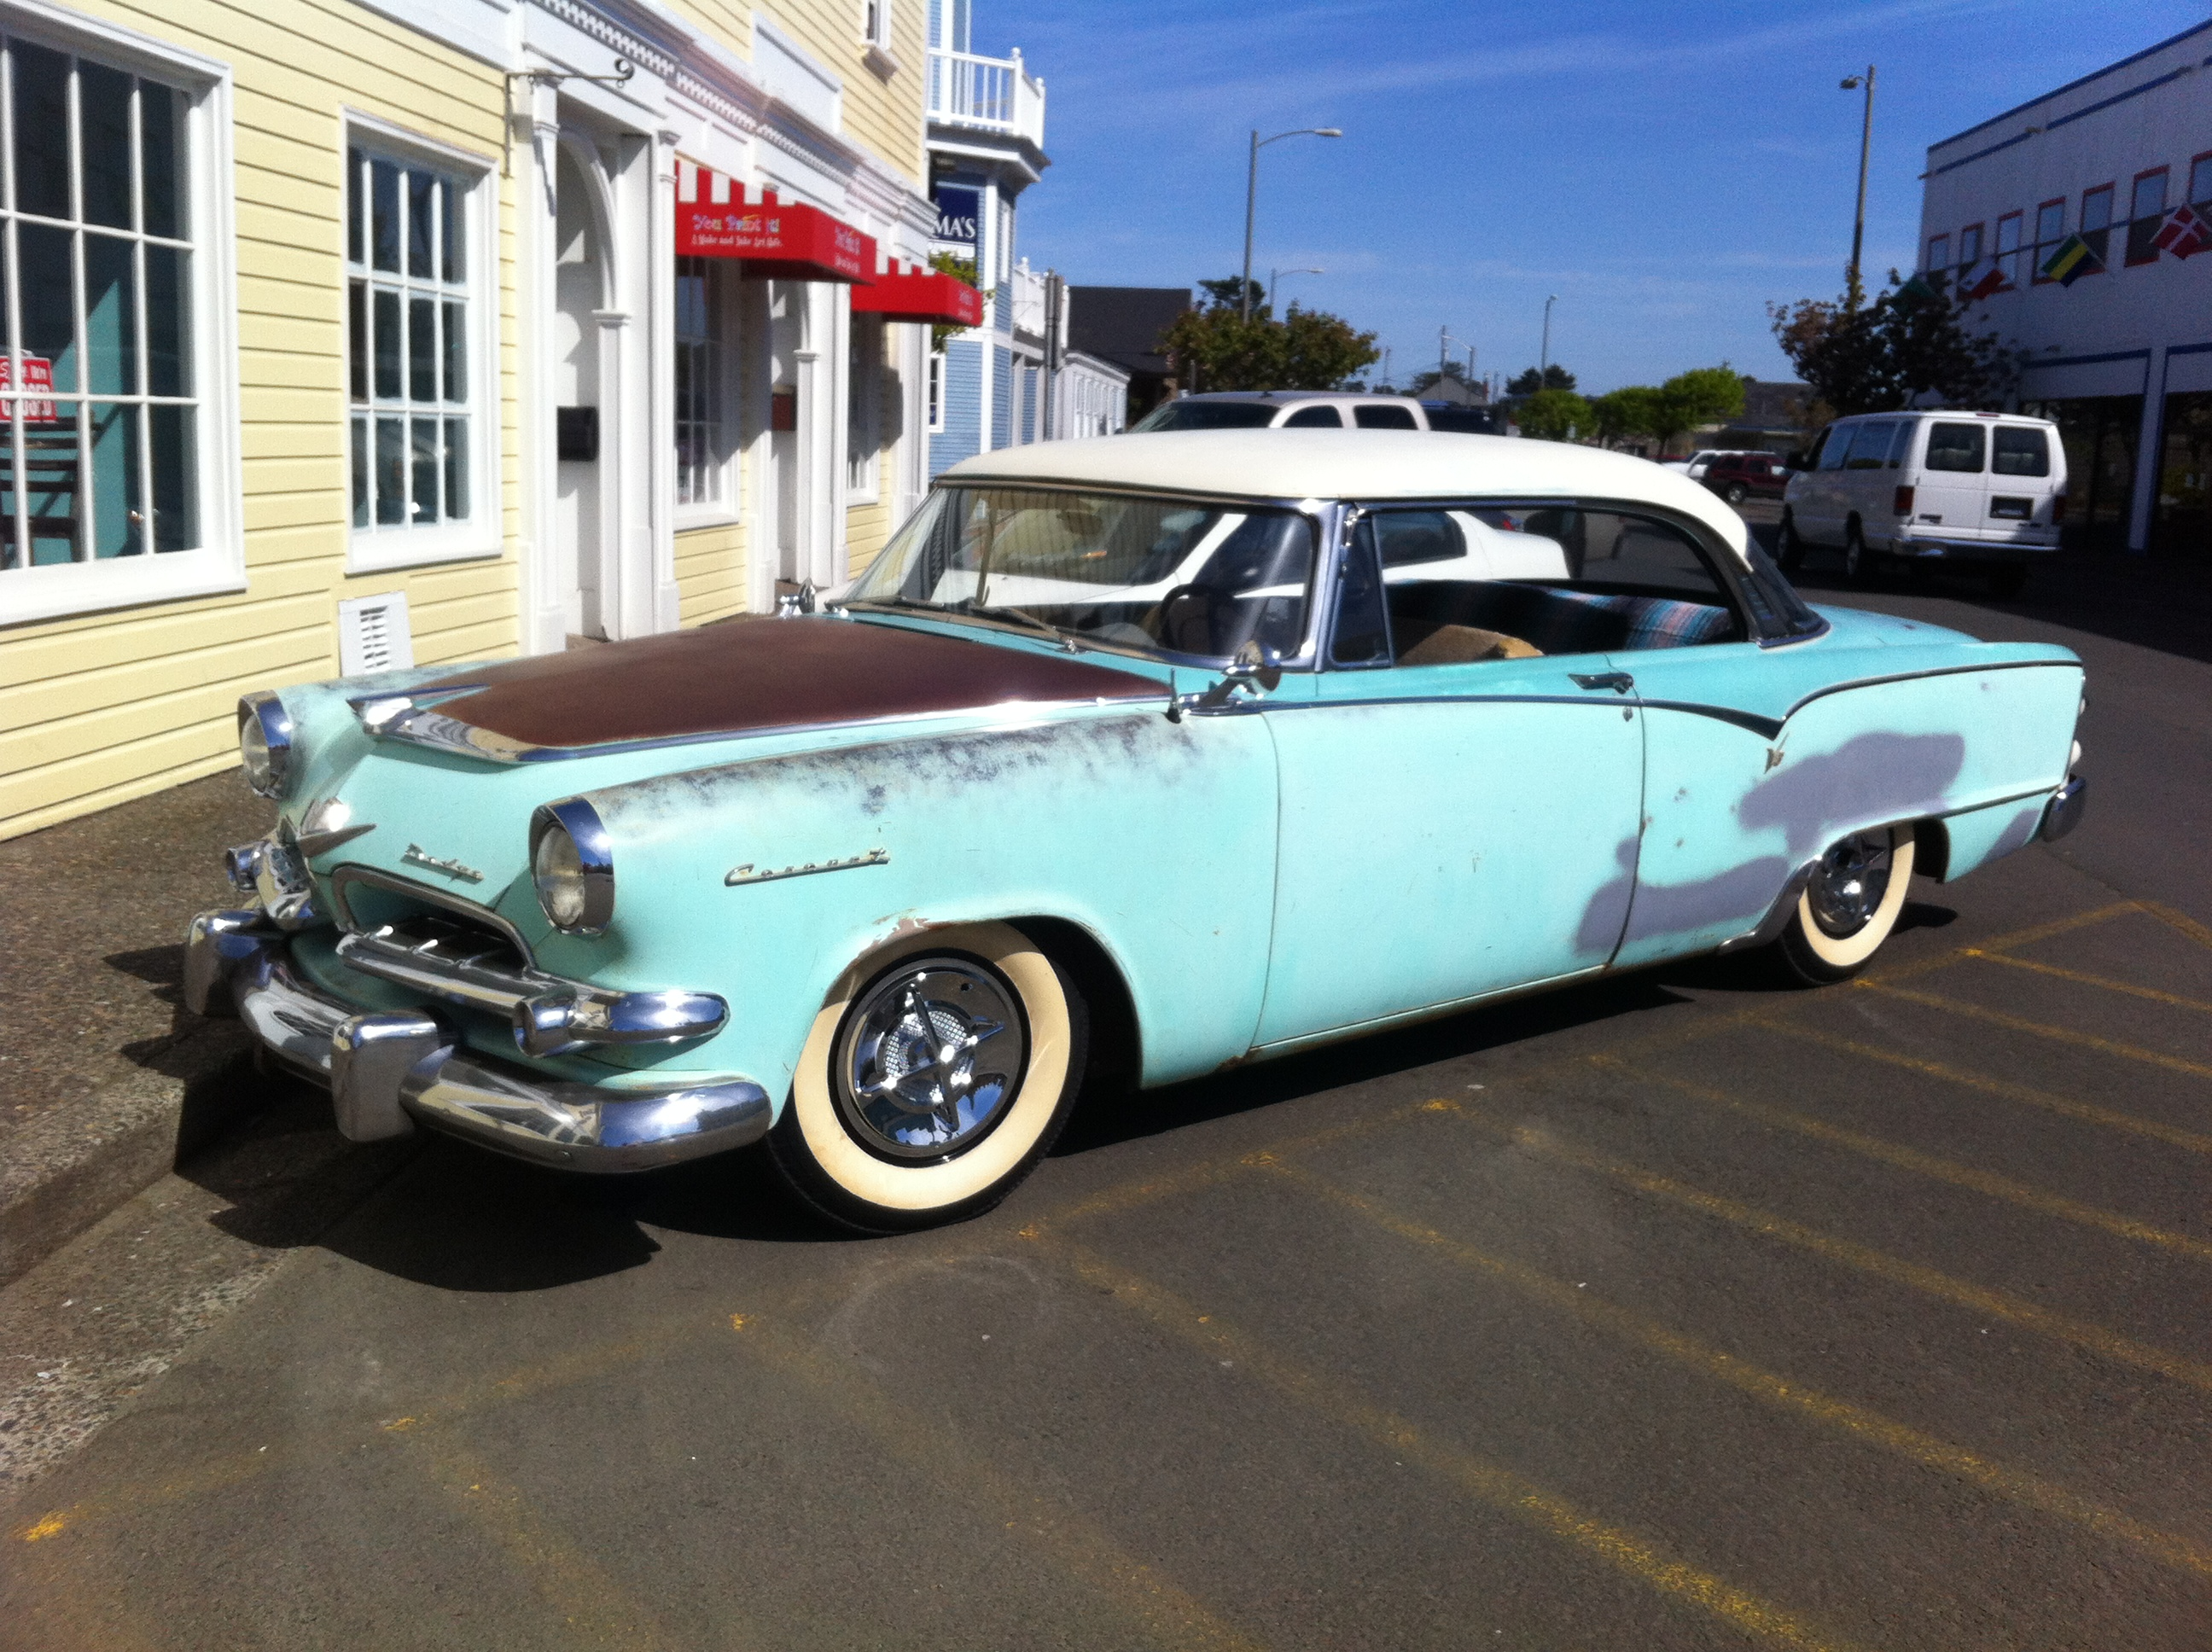 1955 dodge coronet 2 door hardtop the h a m b for 1955 dodge coronet 4 door